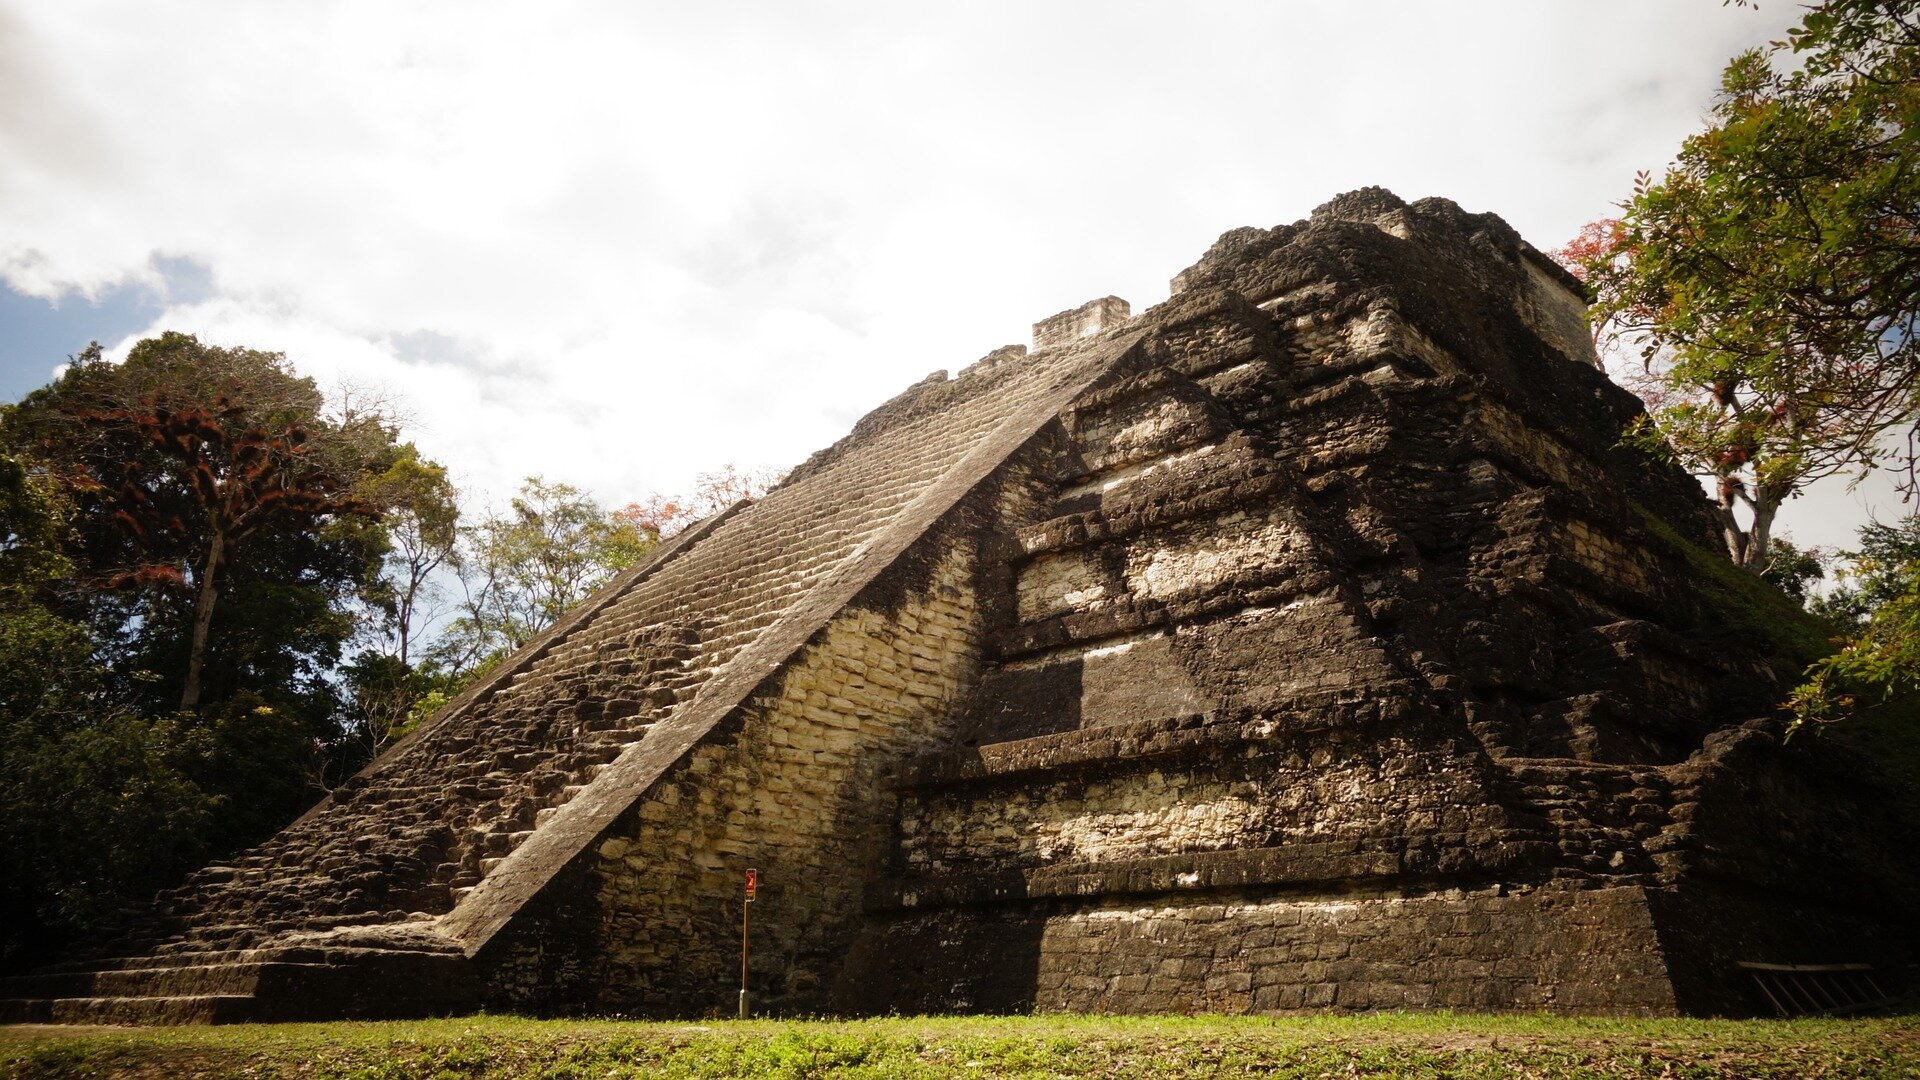 Study finds nearly 500 ancient ceremonial sites in southern Mexico